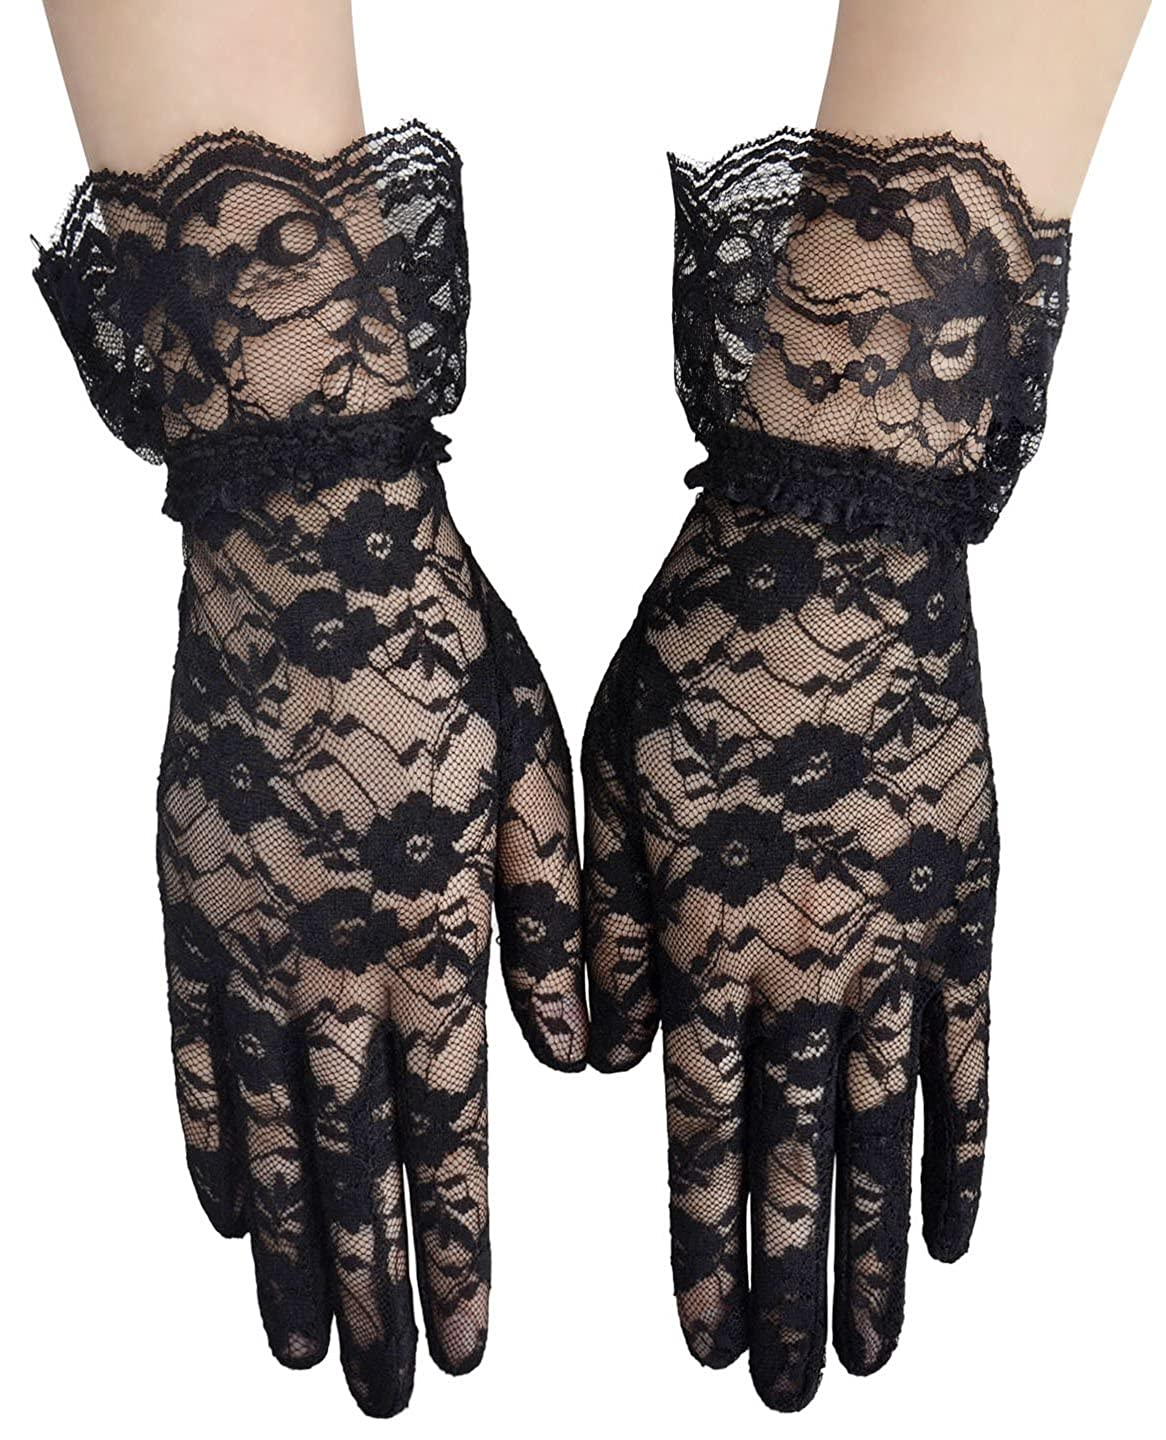 Vintage Style Gloves- Long, Wrist, Evening, Day, Leather, Lace Simplicity Womens Vintage Sheer Floral Lace Wrist Length Gloves $14.99 AT vintagedancer.com